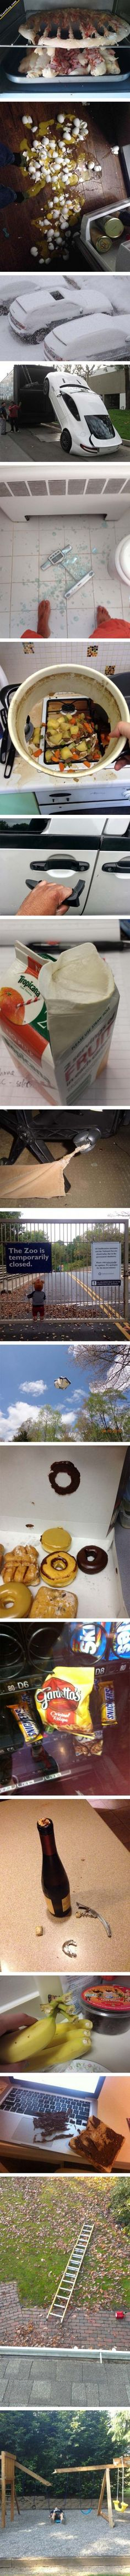 Your Day Could Be Worse. Hahaha TOO FUNNY